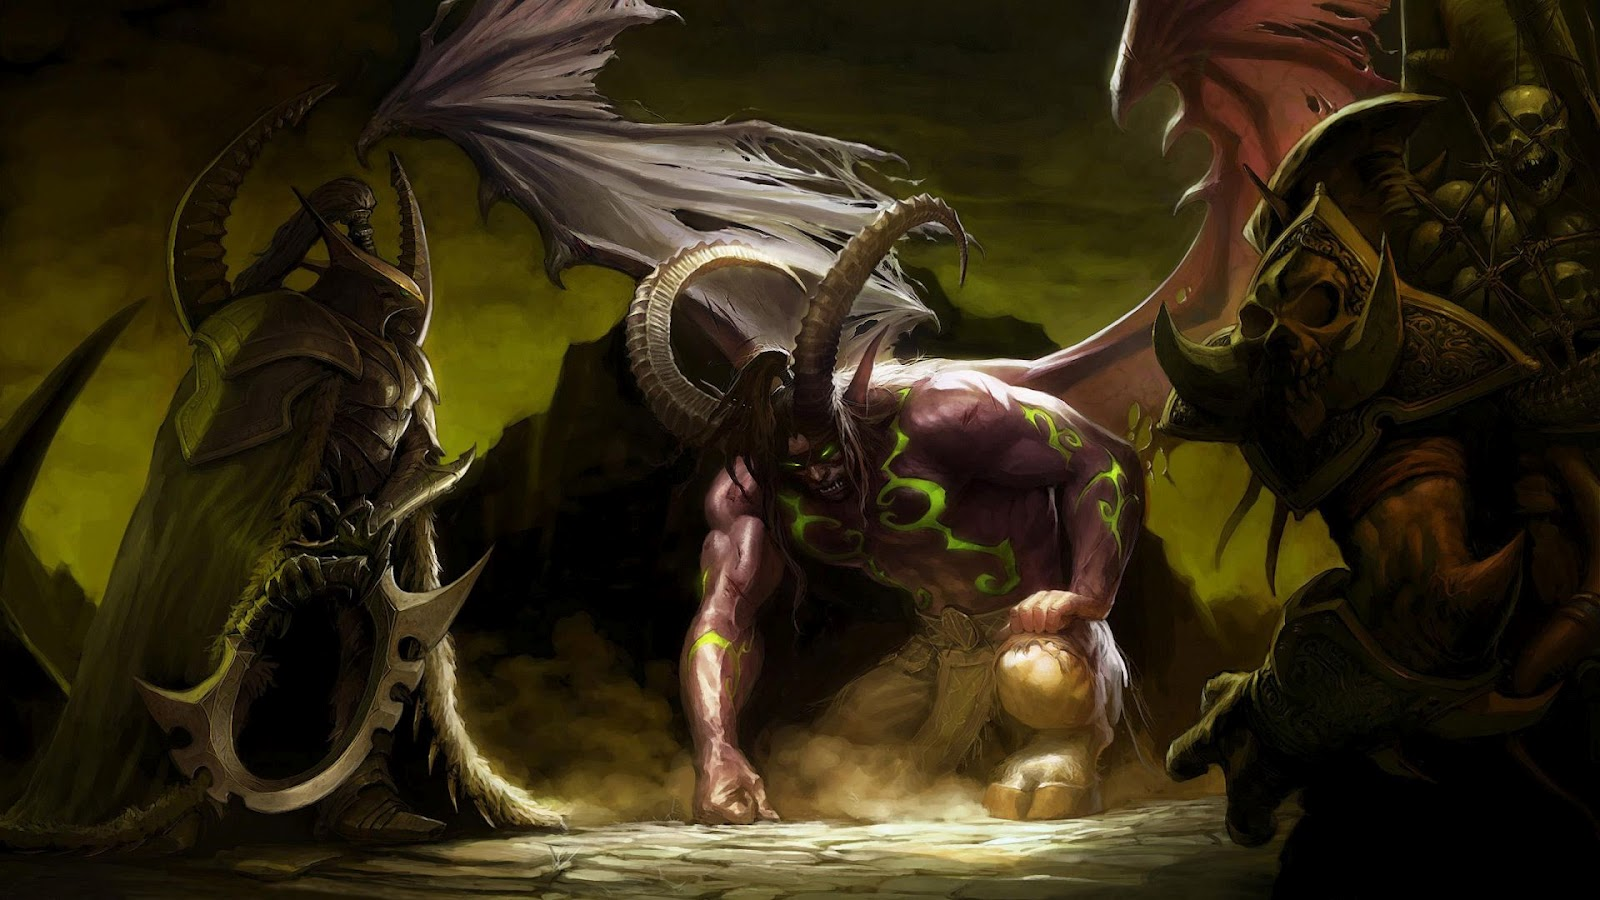 http://2.bp.blogspot.com/-6QqNXMF_9BU/UA6qfPeUmoI/AAAAAAAAA40/UJK-qCP-eMI/s1600/world-of-warcraft-online-game-wallpaper_1920x1080_85682.jpg